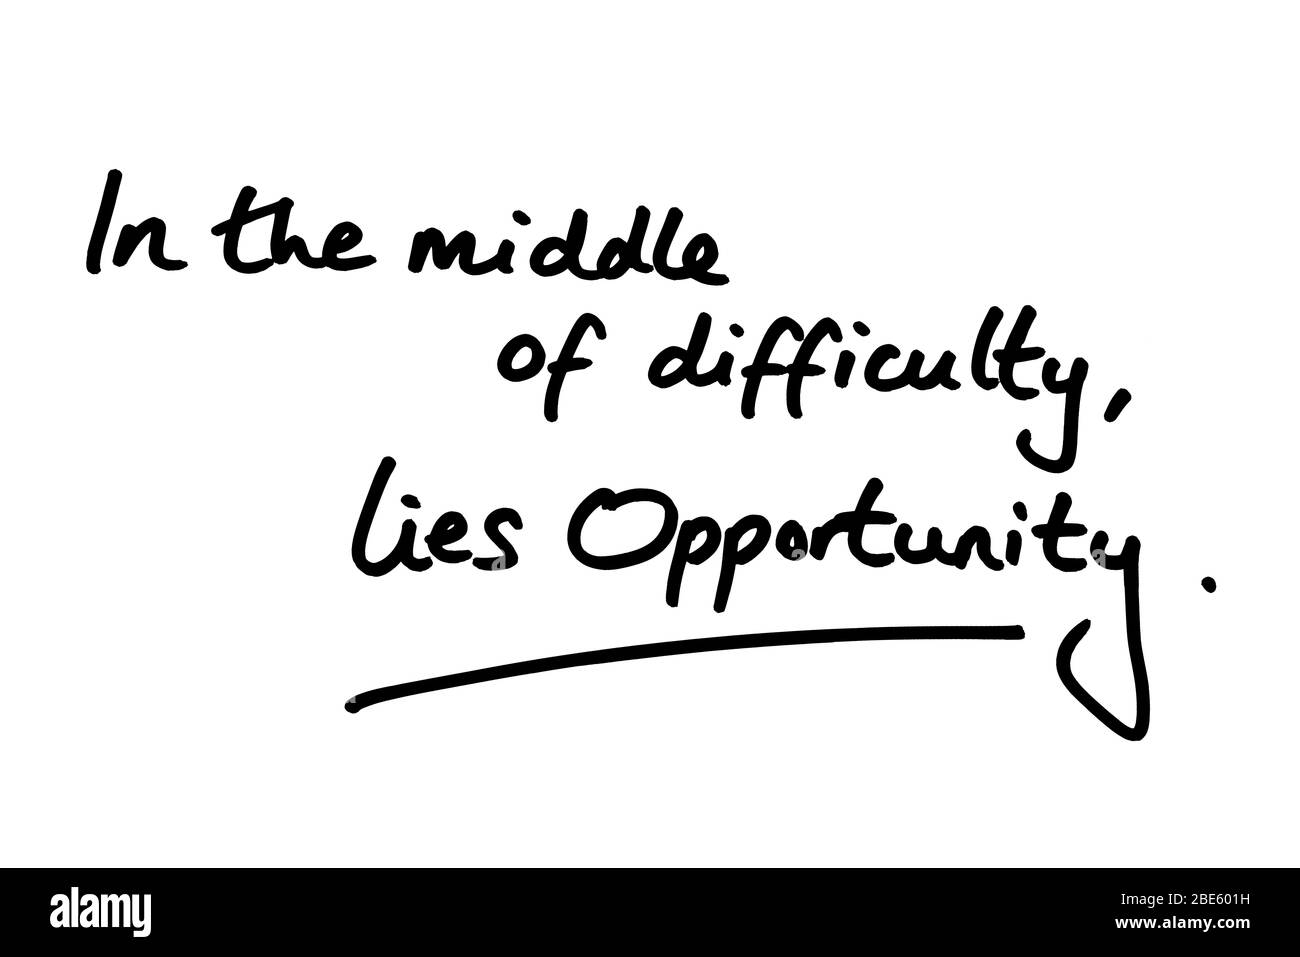 In the middle of difficulty, lies opportunity, handwritten on a white background. Stock Photo